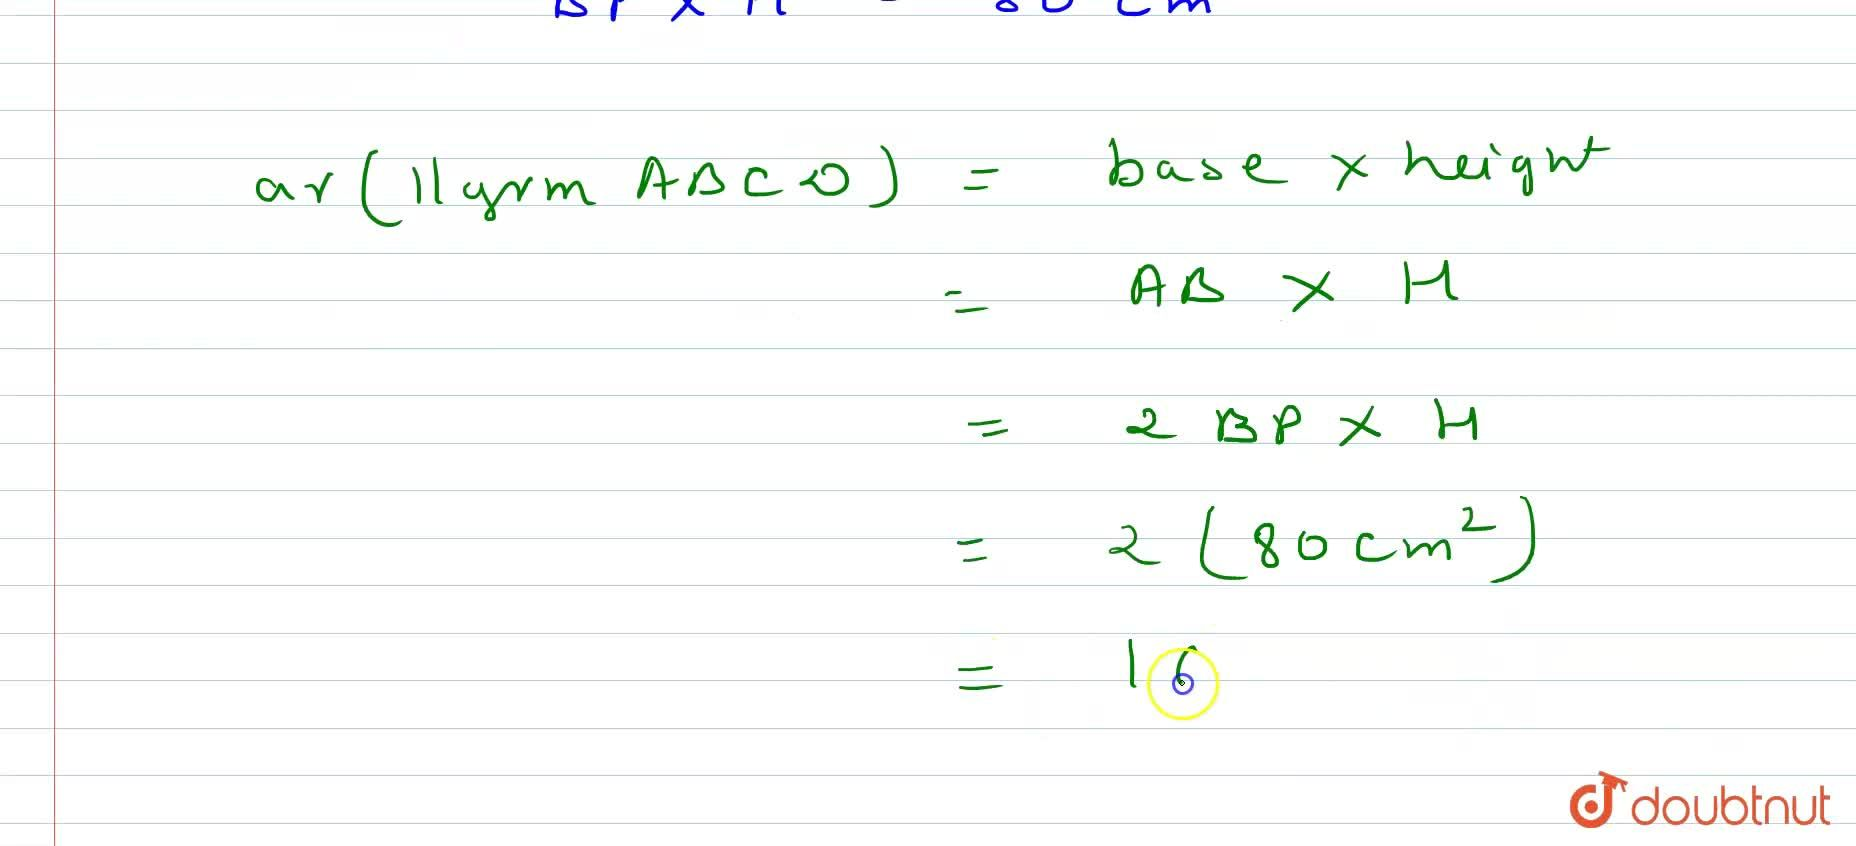 A B C D is a parallelogram. P is the   mid-point of A BdotB D\ a n d\ C P intersect   at Q such that C Q : Q P=3: 1. If a r\ ( P B Q)=10\ c m^2, find the   area of parallelogram A B C D